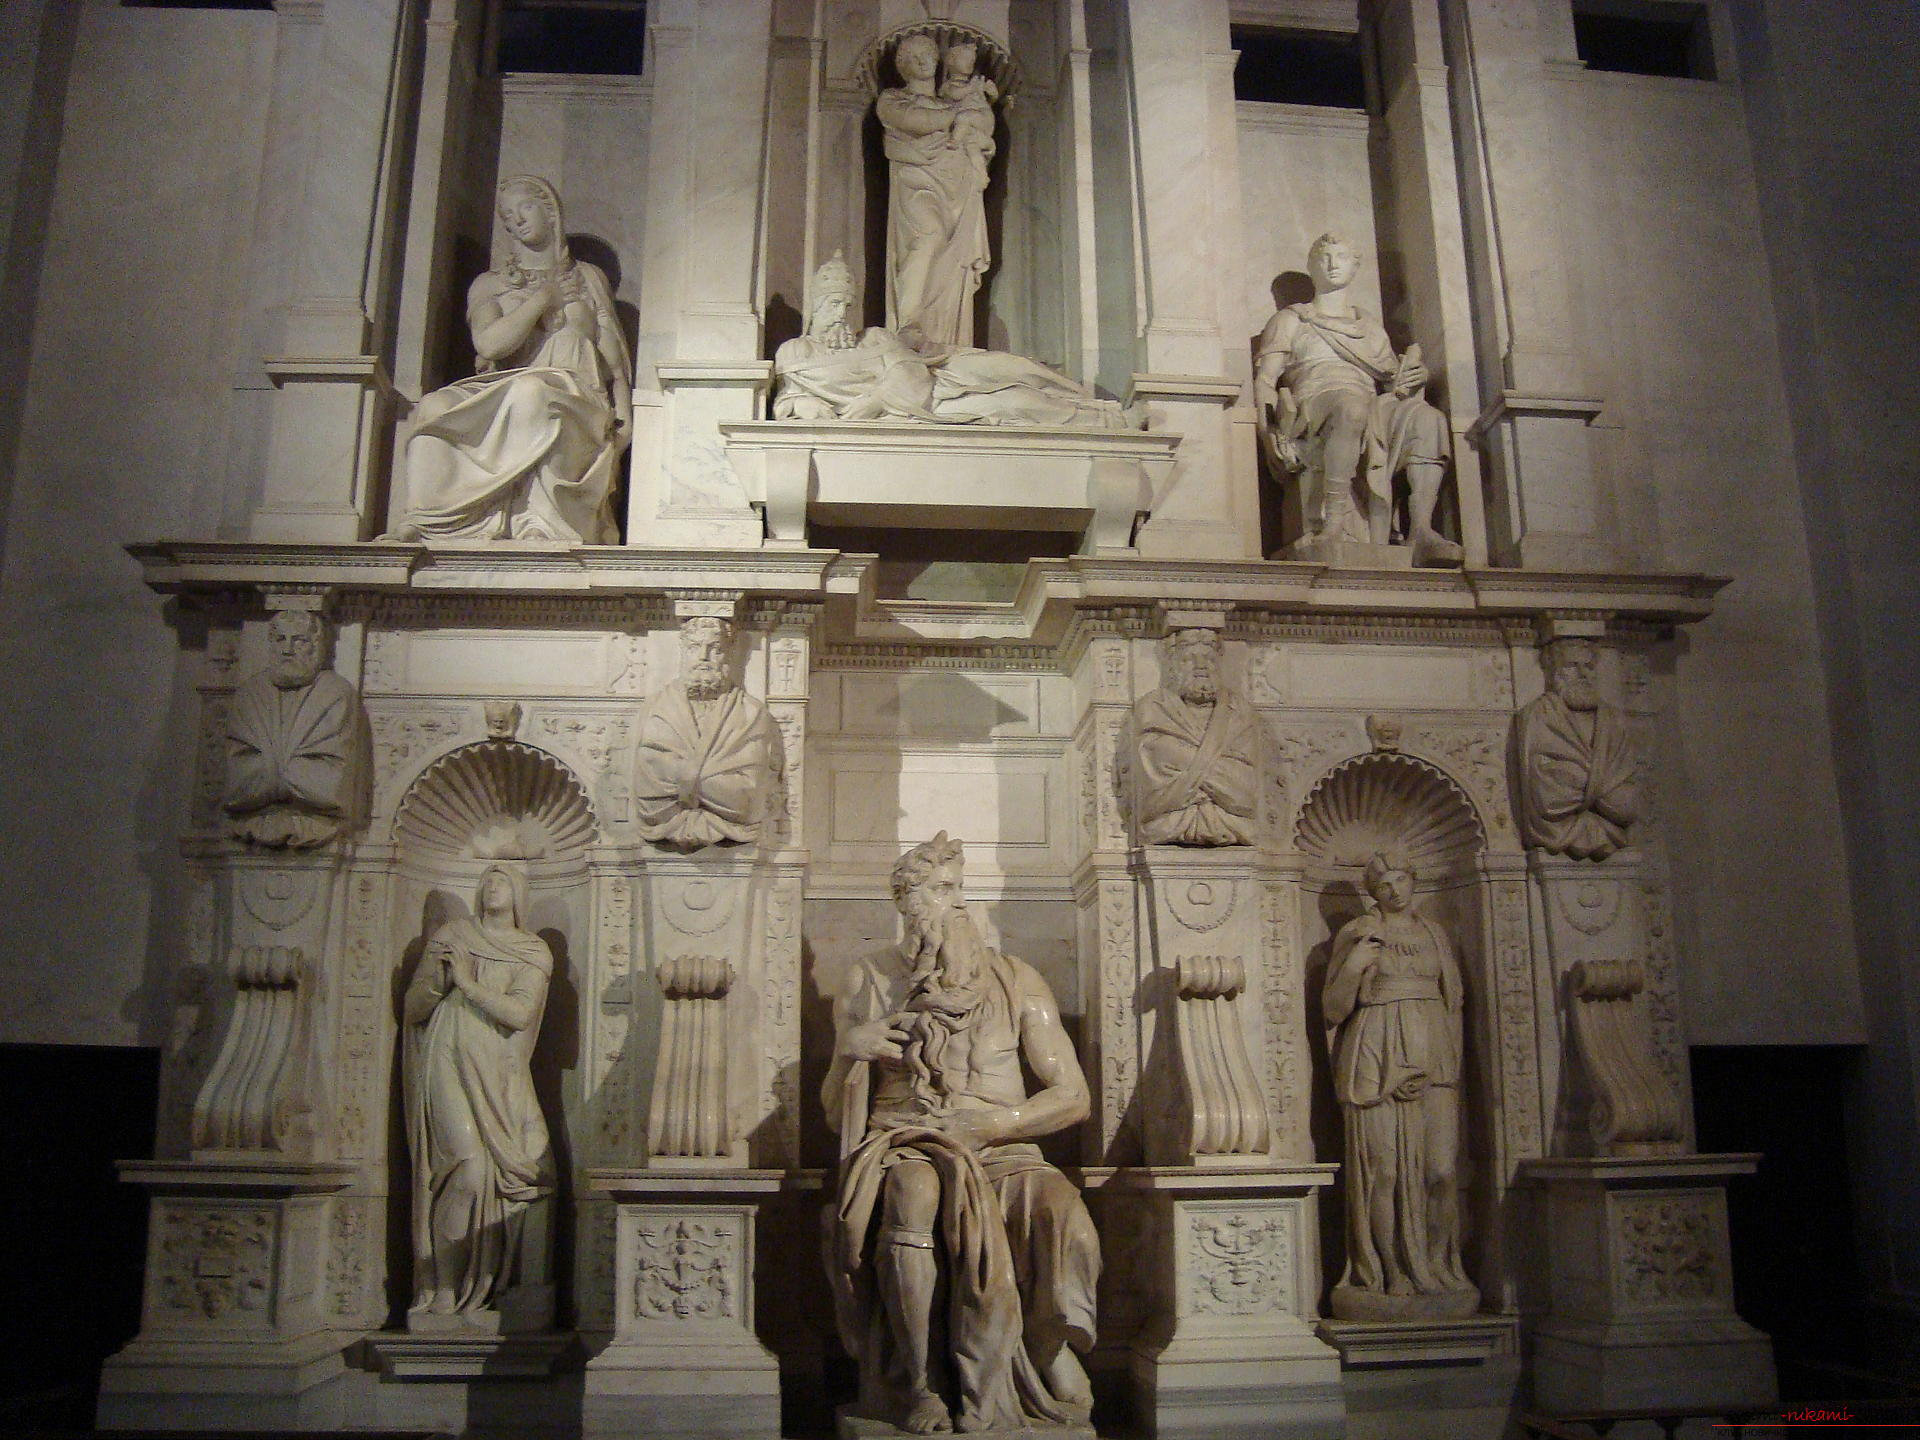 Popular and characteristic features of the style of Michelangelo - sculpture. Photo №4